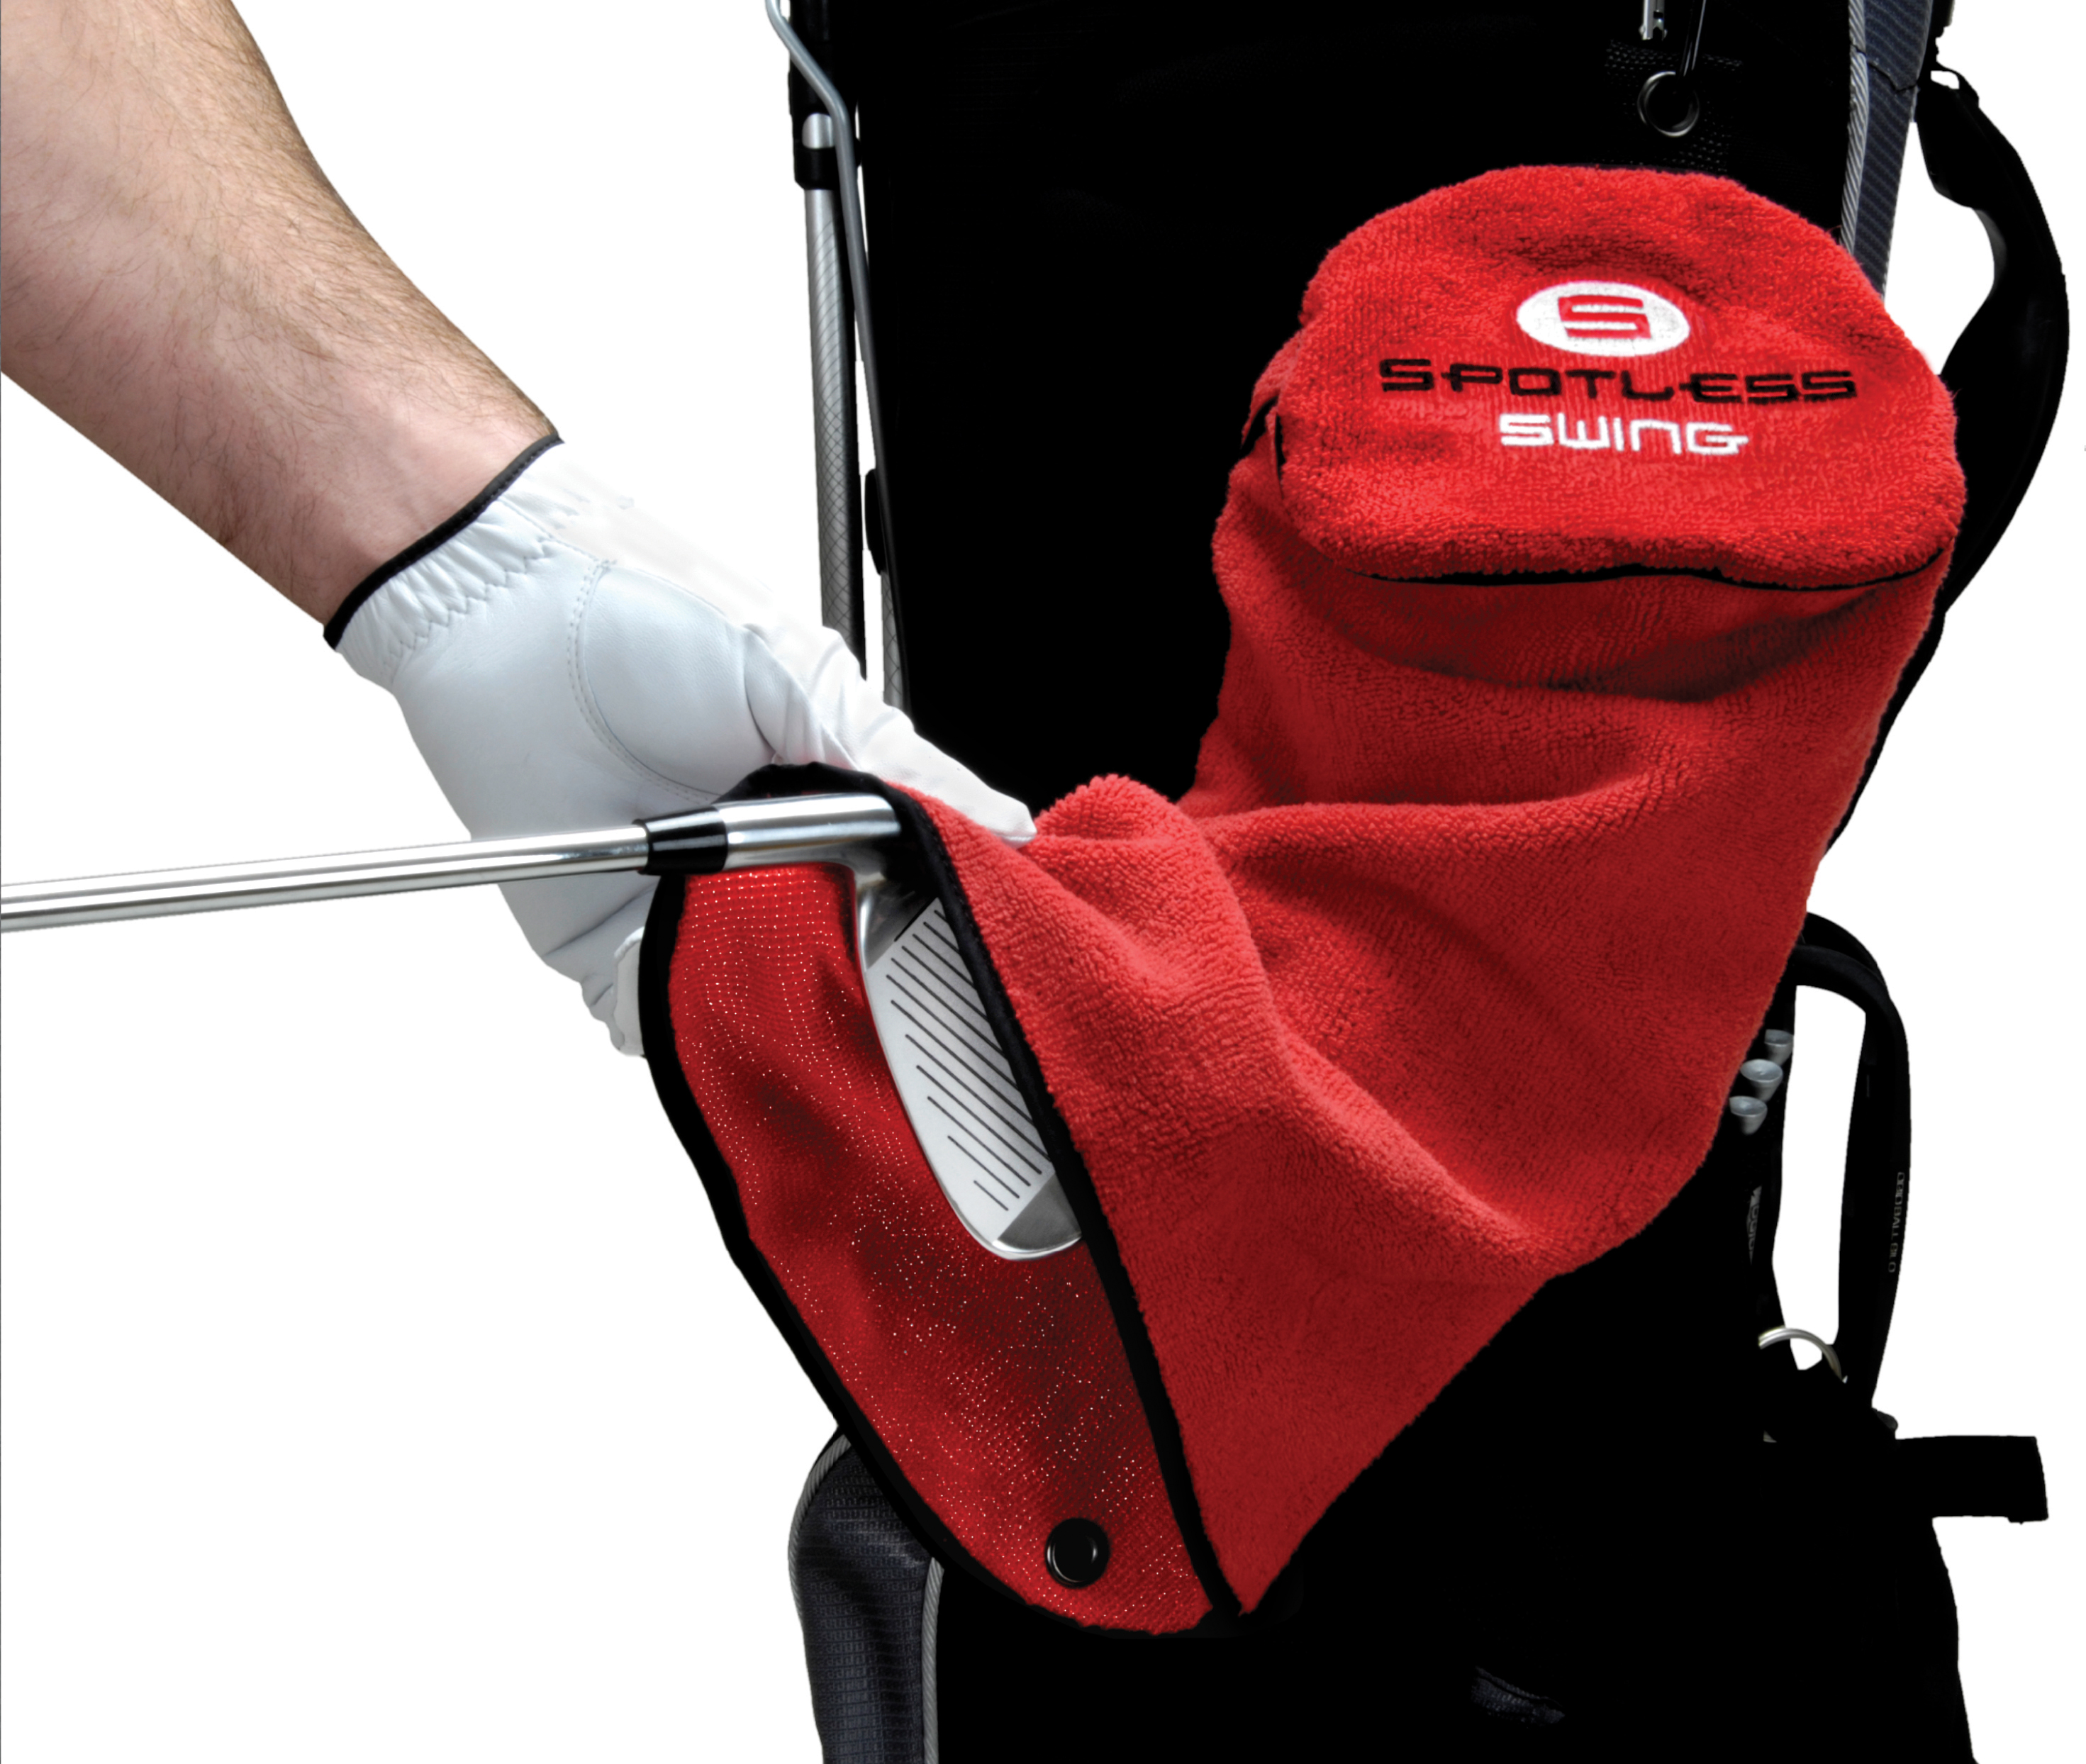 Spotless Swing 174 Golf Towel Used By Top Finishers At The